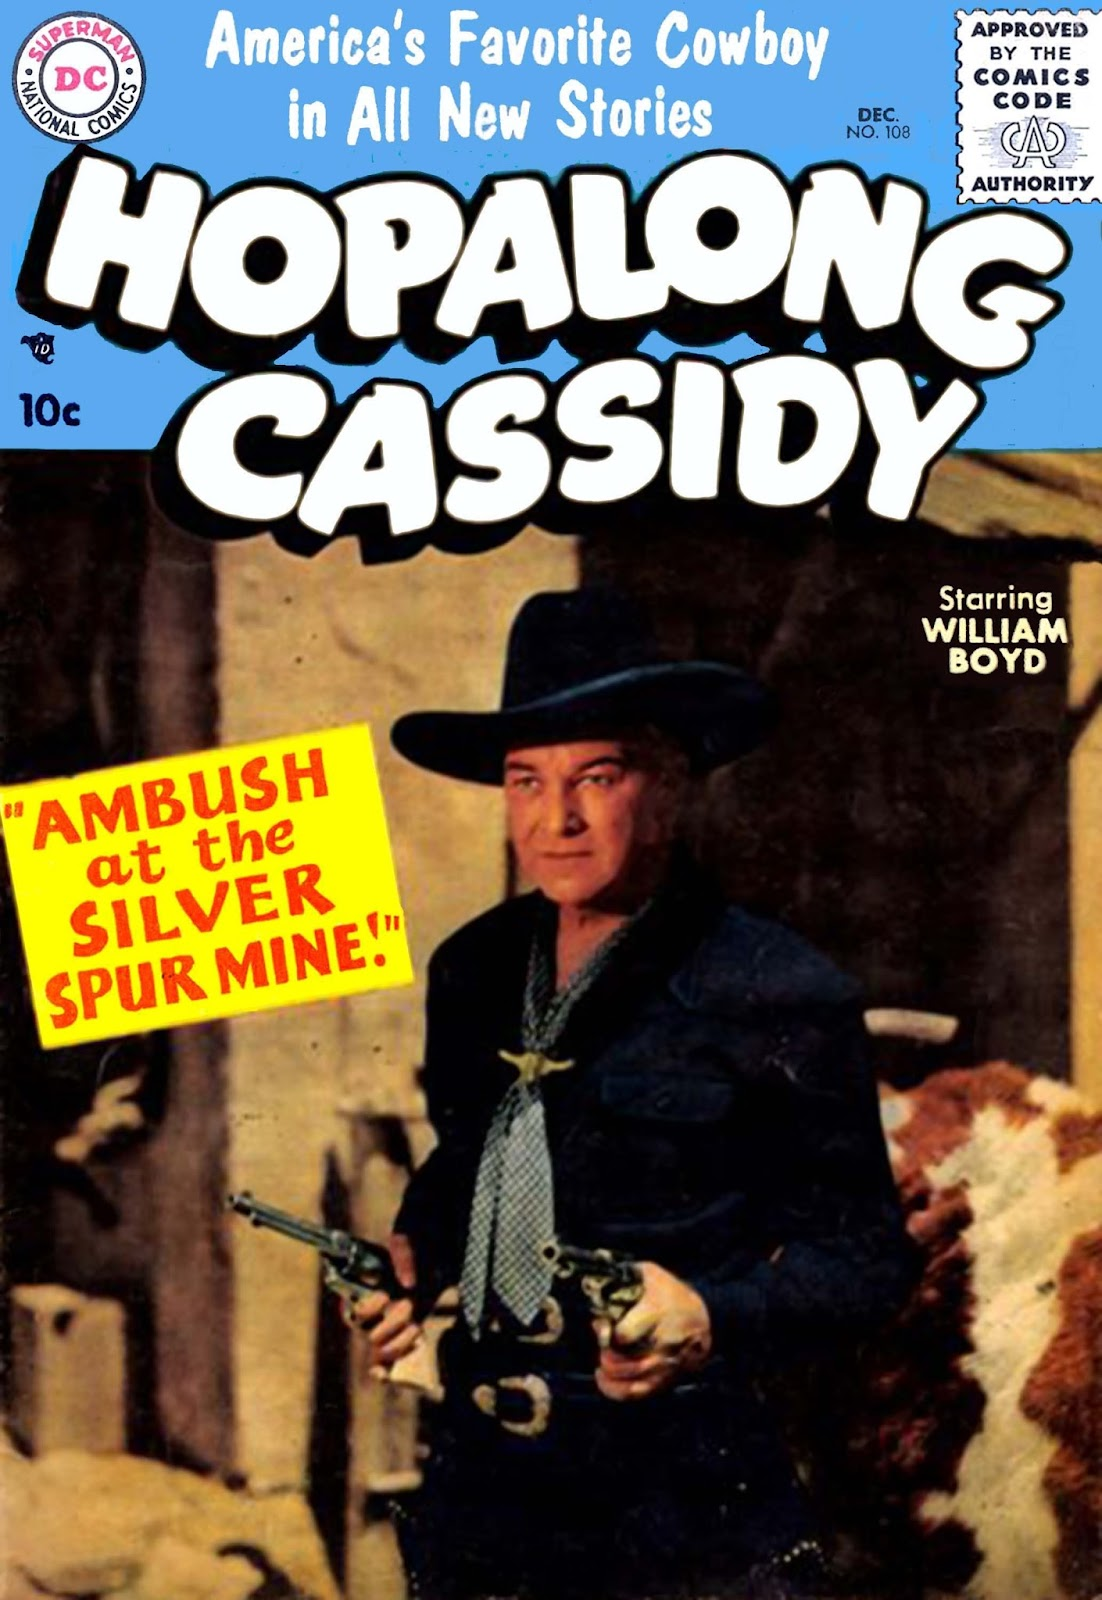 Hopalong Cassidy issue 108 - Page 1